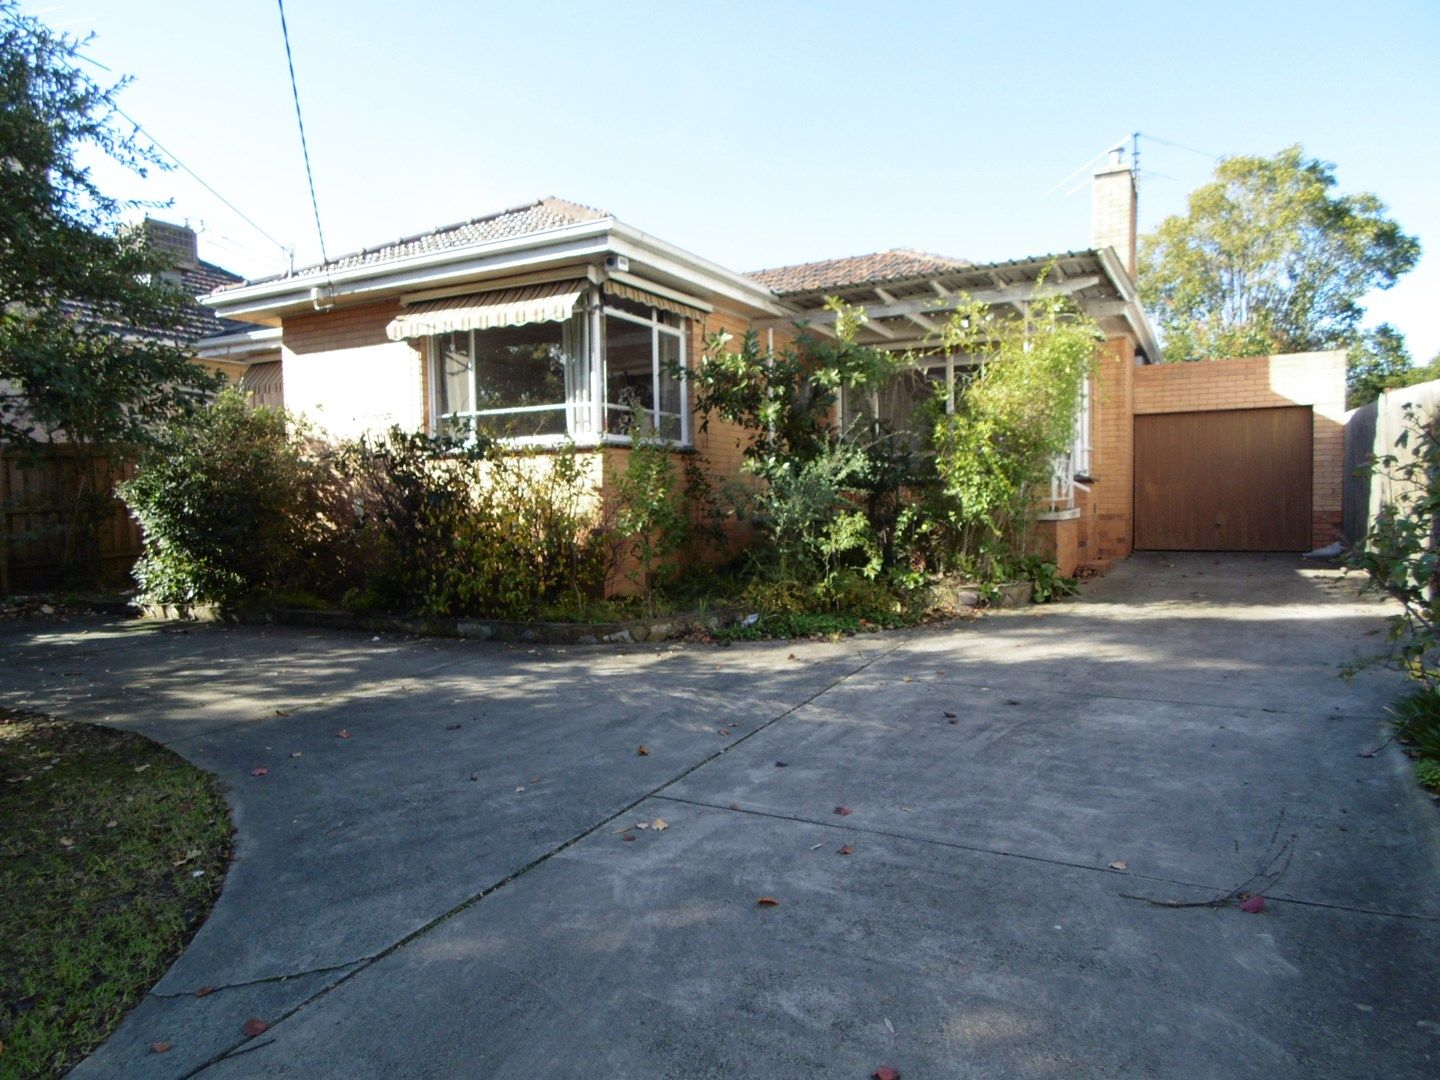 192 Thompsons  Road, Bulleen VIC 3105, Image 0